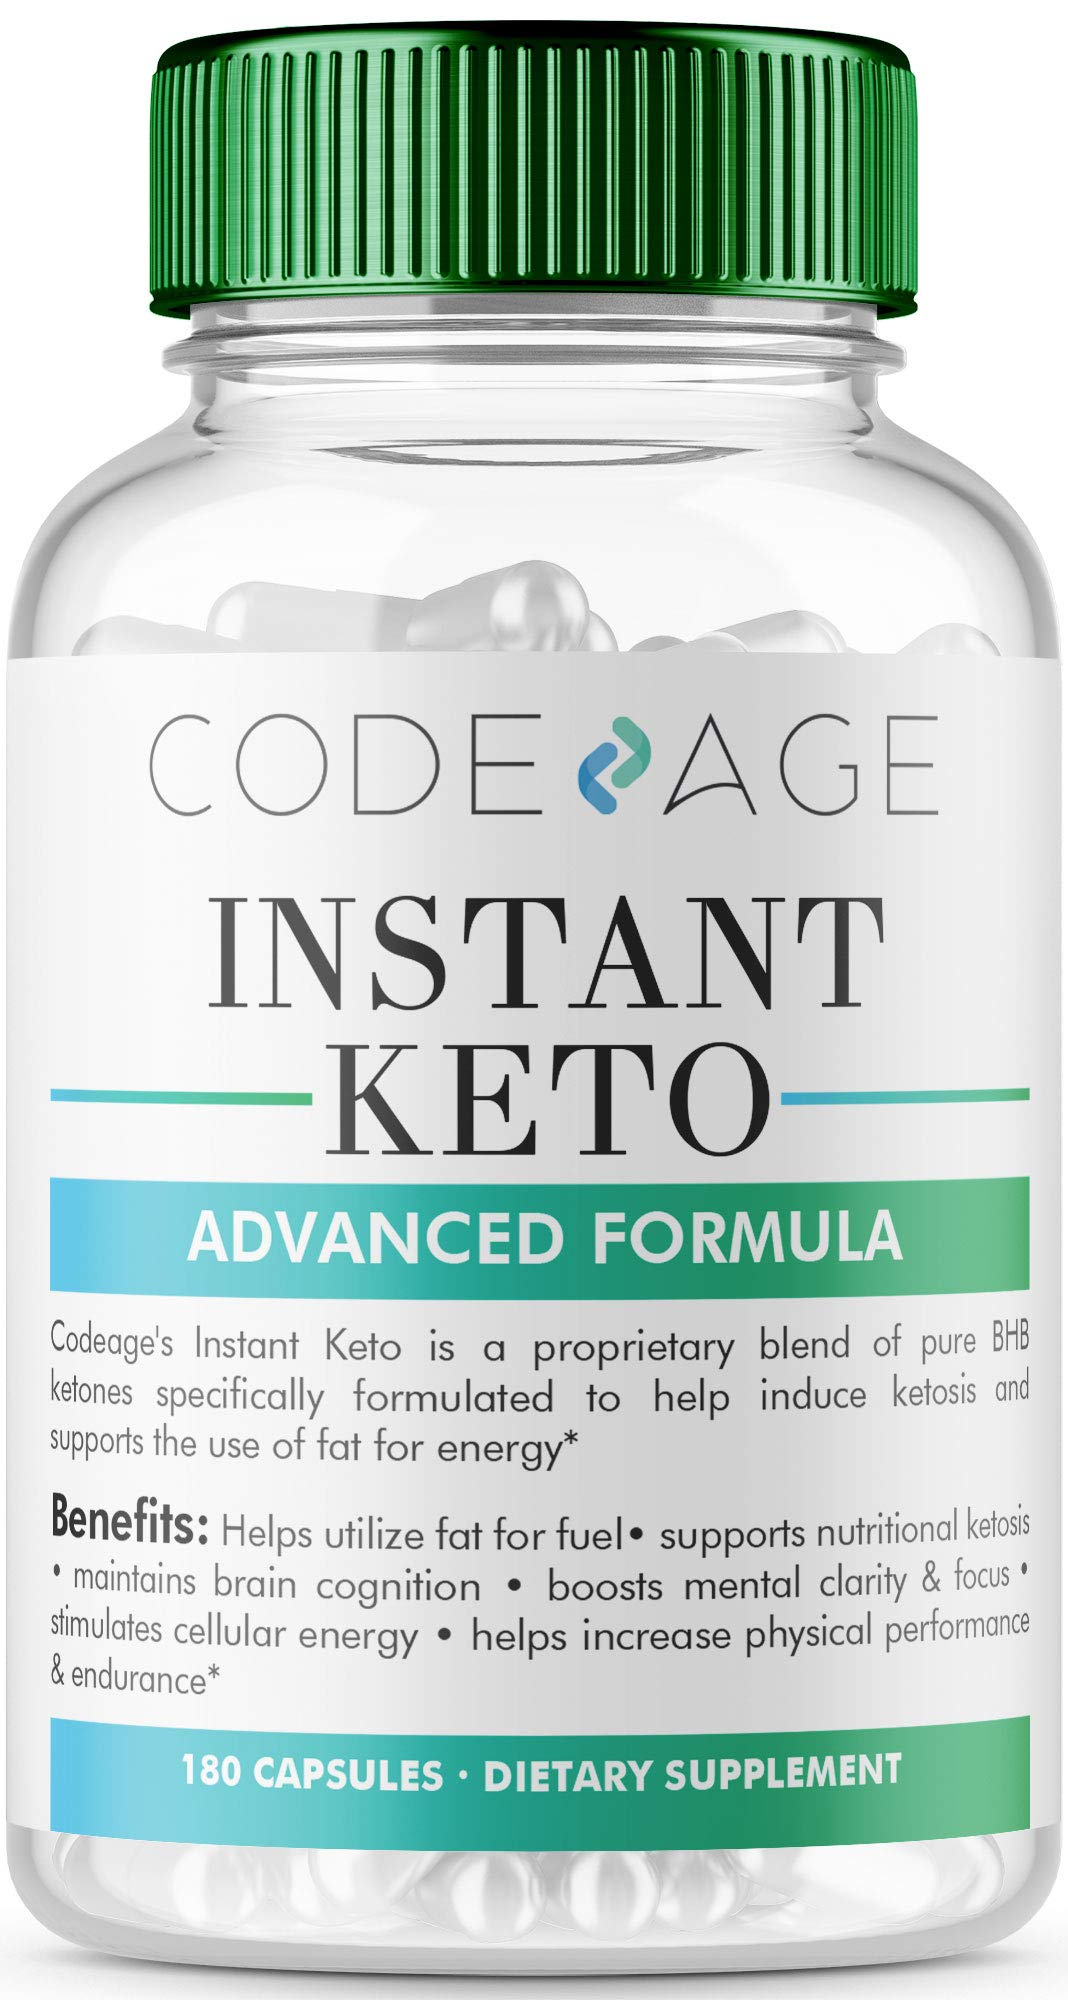 Codeage Instant Keto BHB Weight Loss Supplement Pills for Women and Men, BHB Salts as Exogenous Ketones, 180 Capsules, 90 Day Supply by Codeage